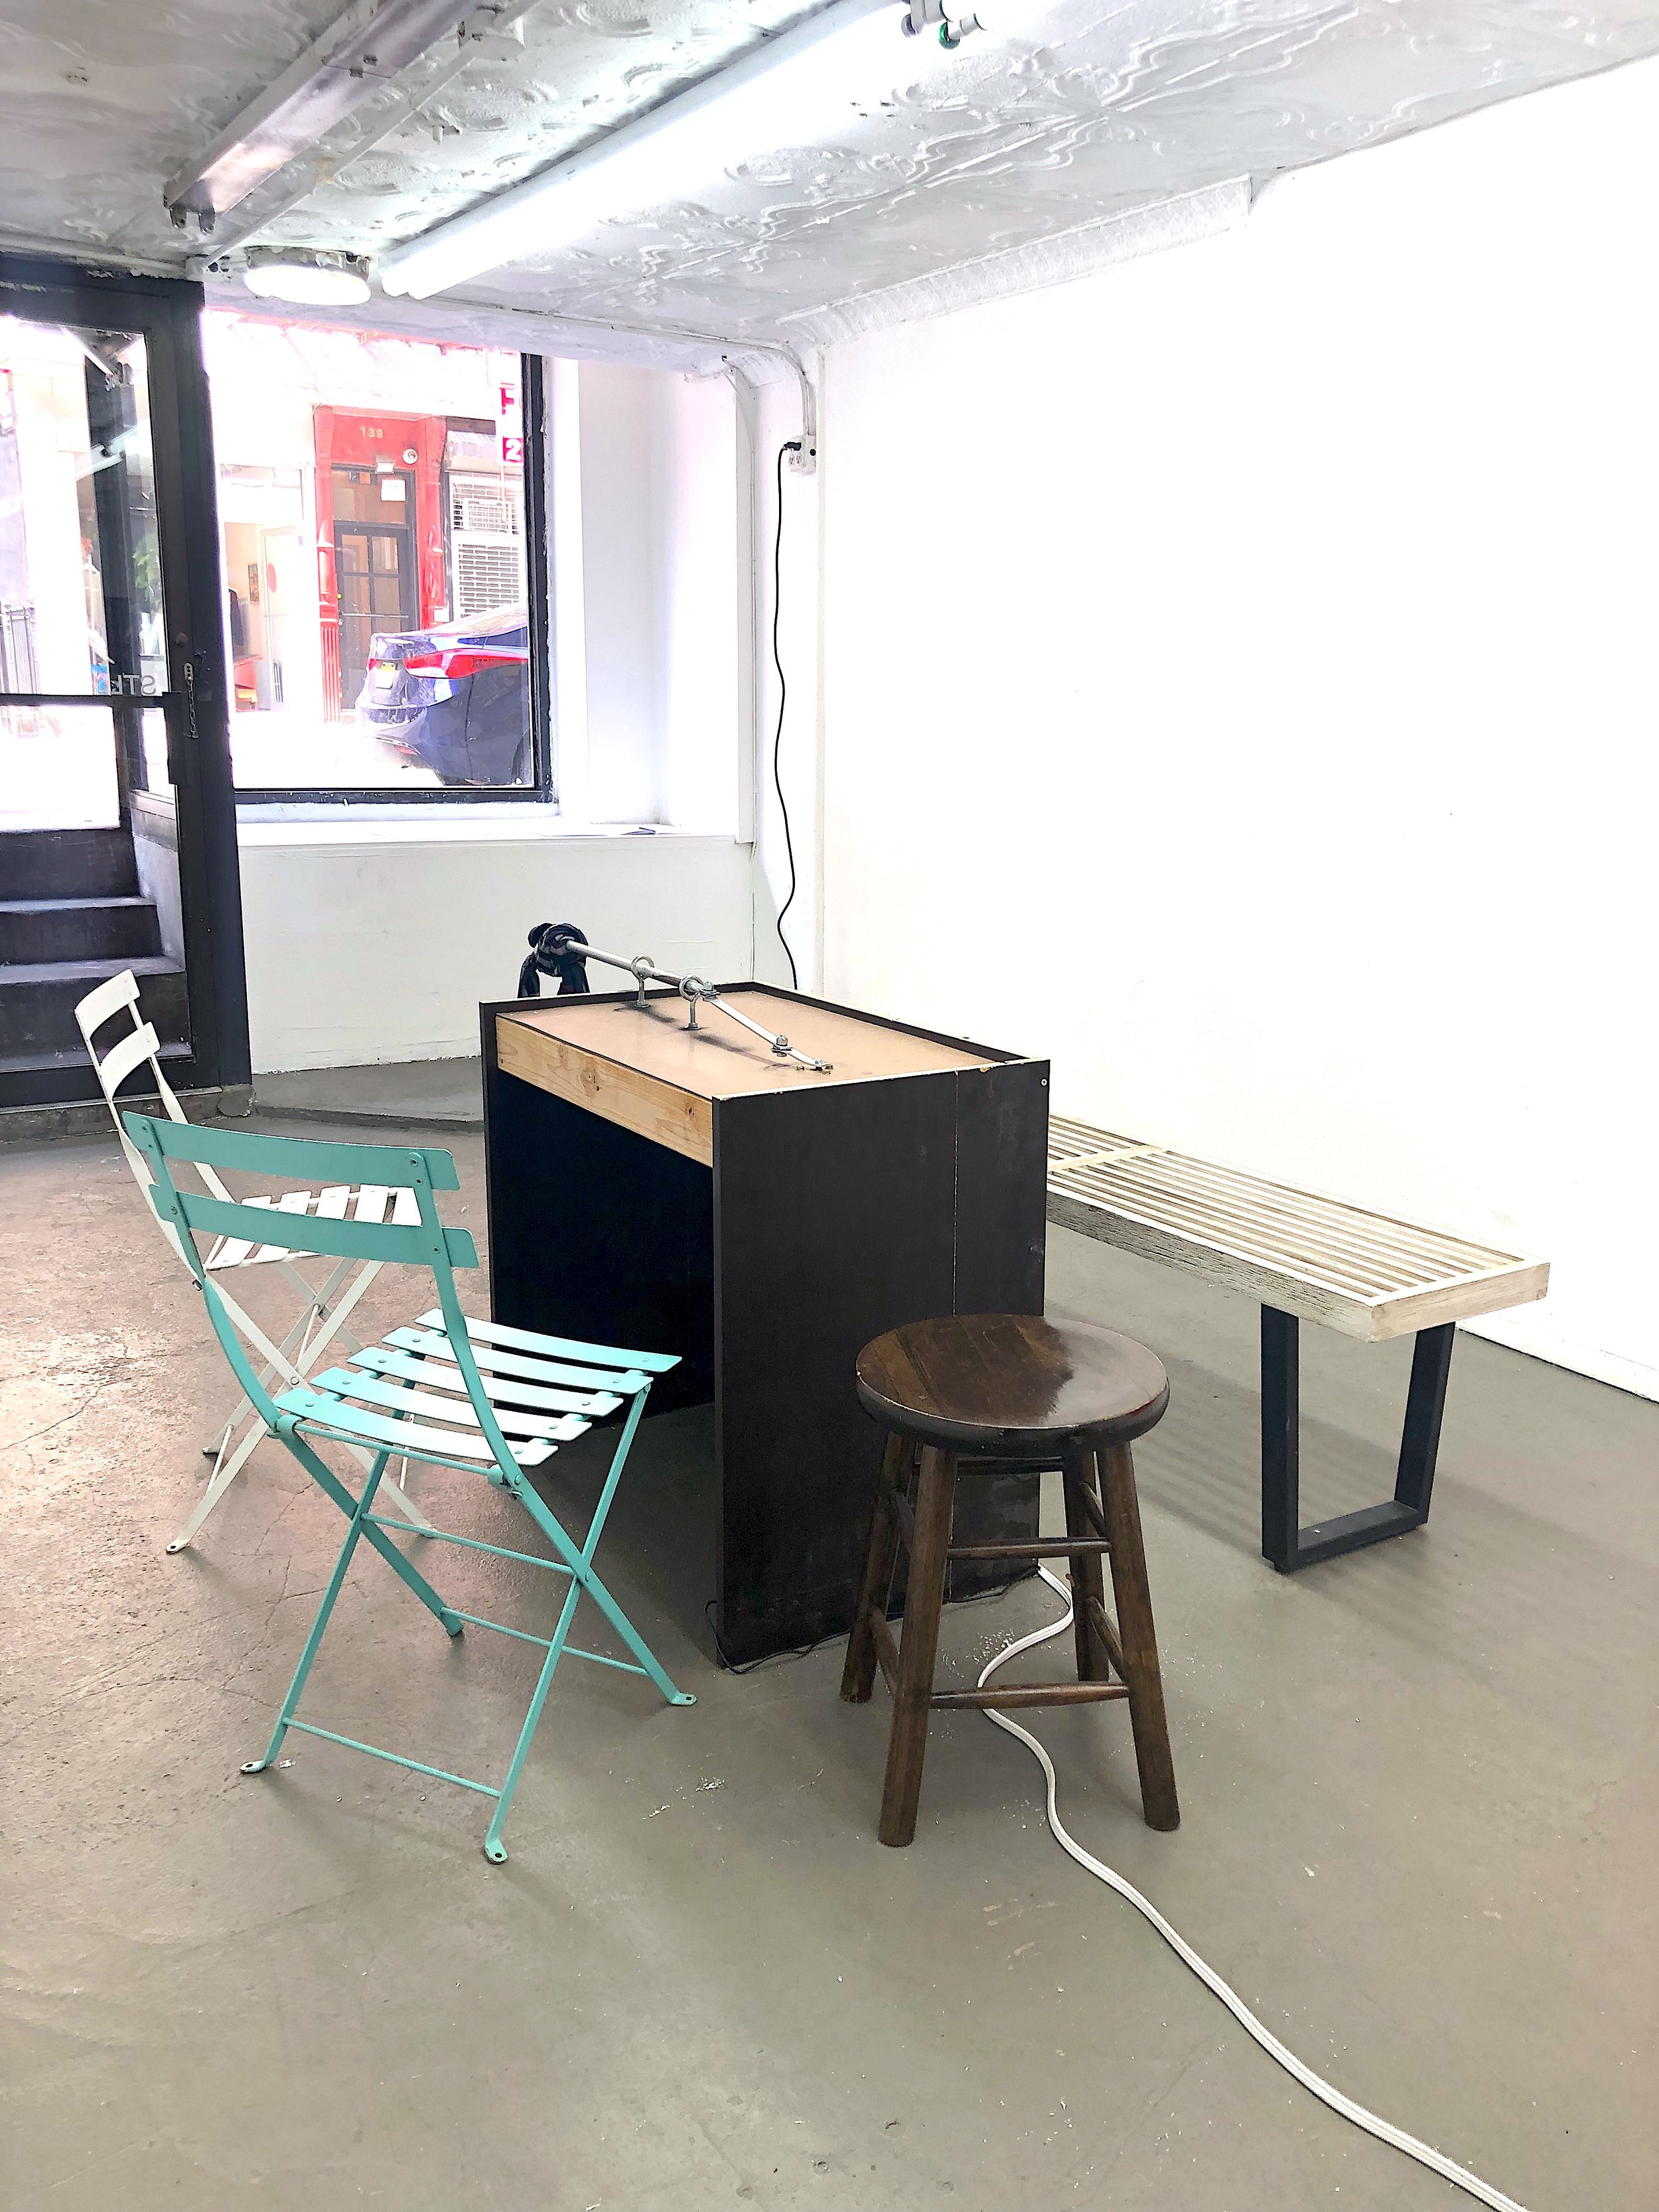 George Egerton-Warburton,  Penal Café: Convict Confidential , 2019, wiper motor, tartan scarf, steel, aluminium, cords, café chairs clandestinely appropriated from/in the style of Australian cafés such as Bluestone lane, Sonnyboy, and Benson's.